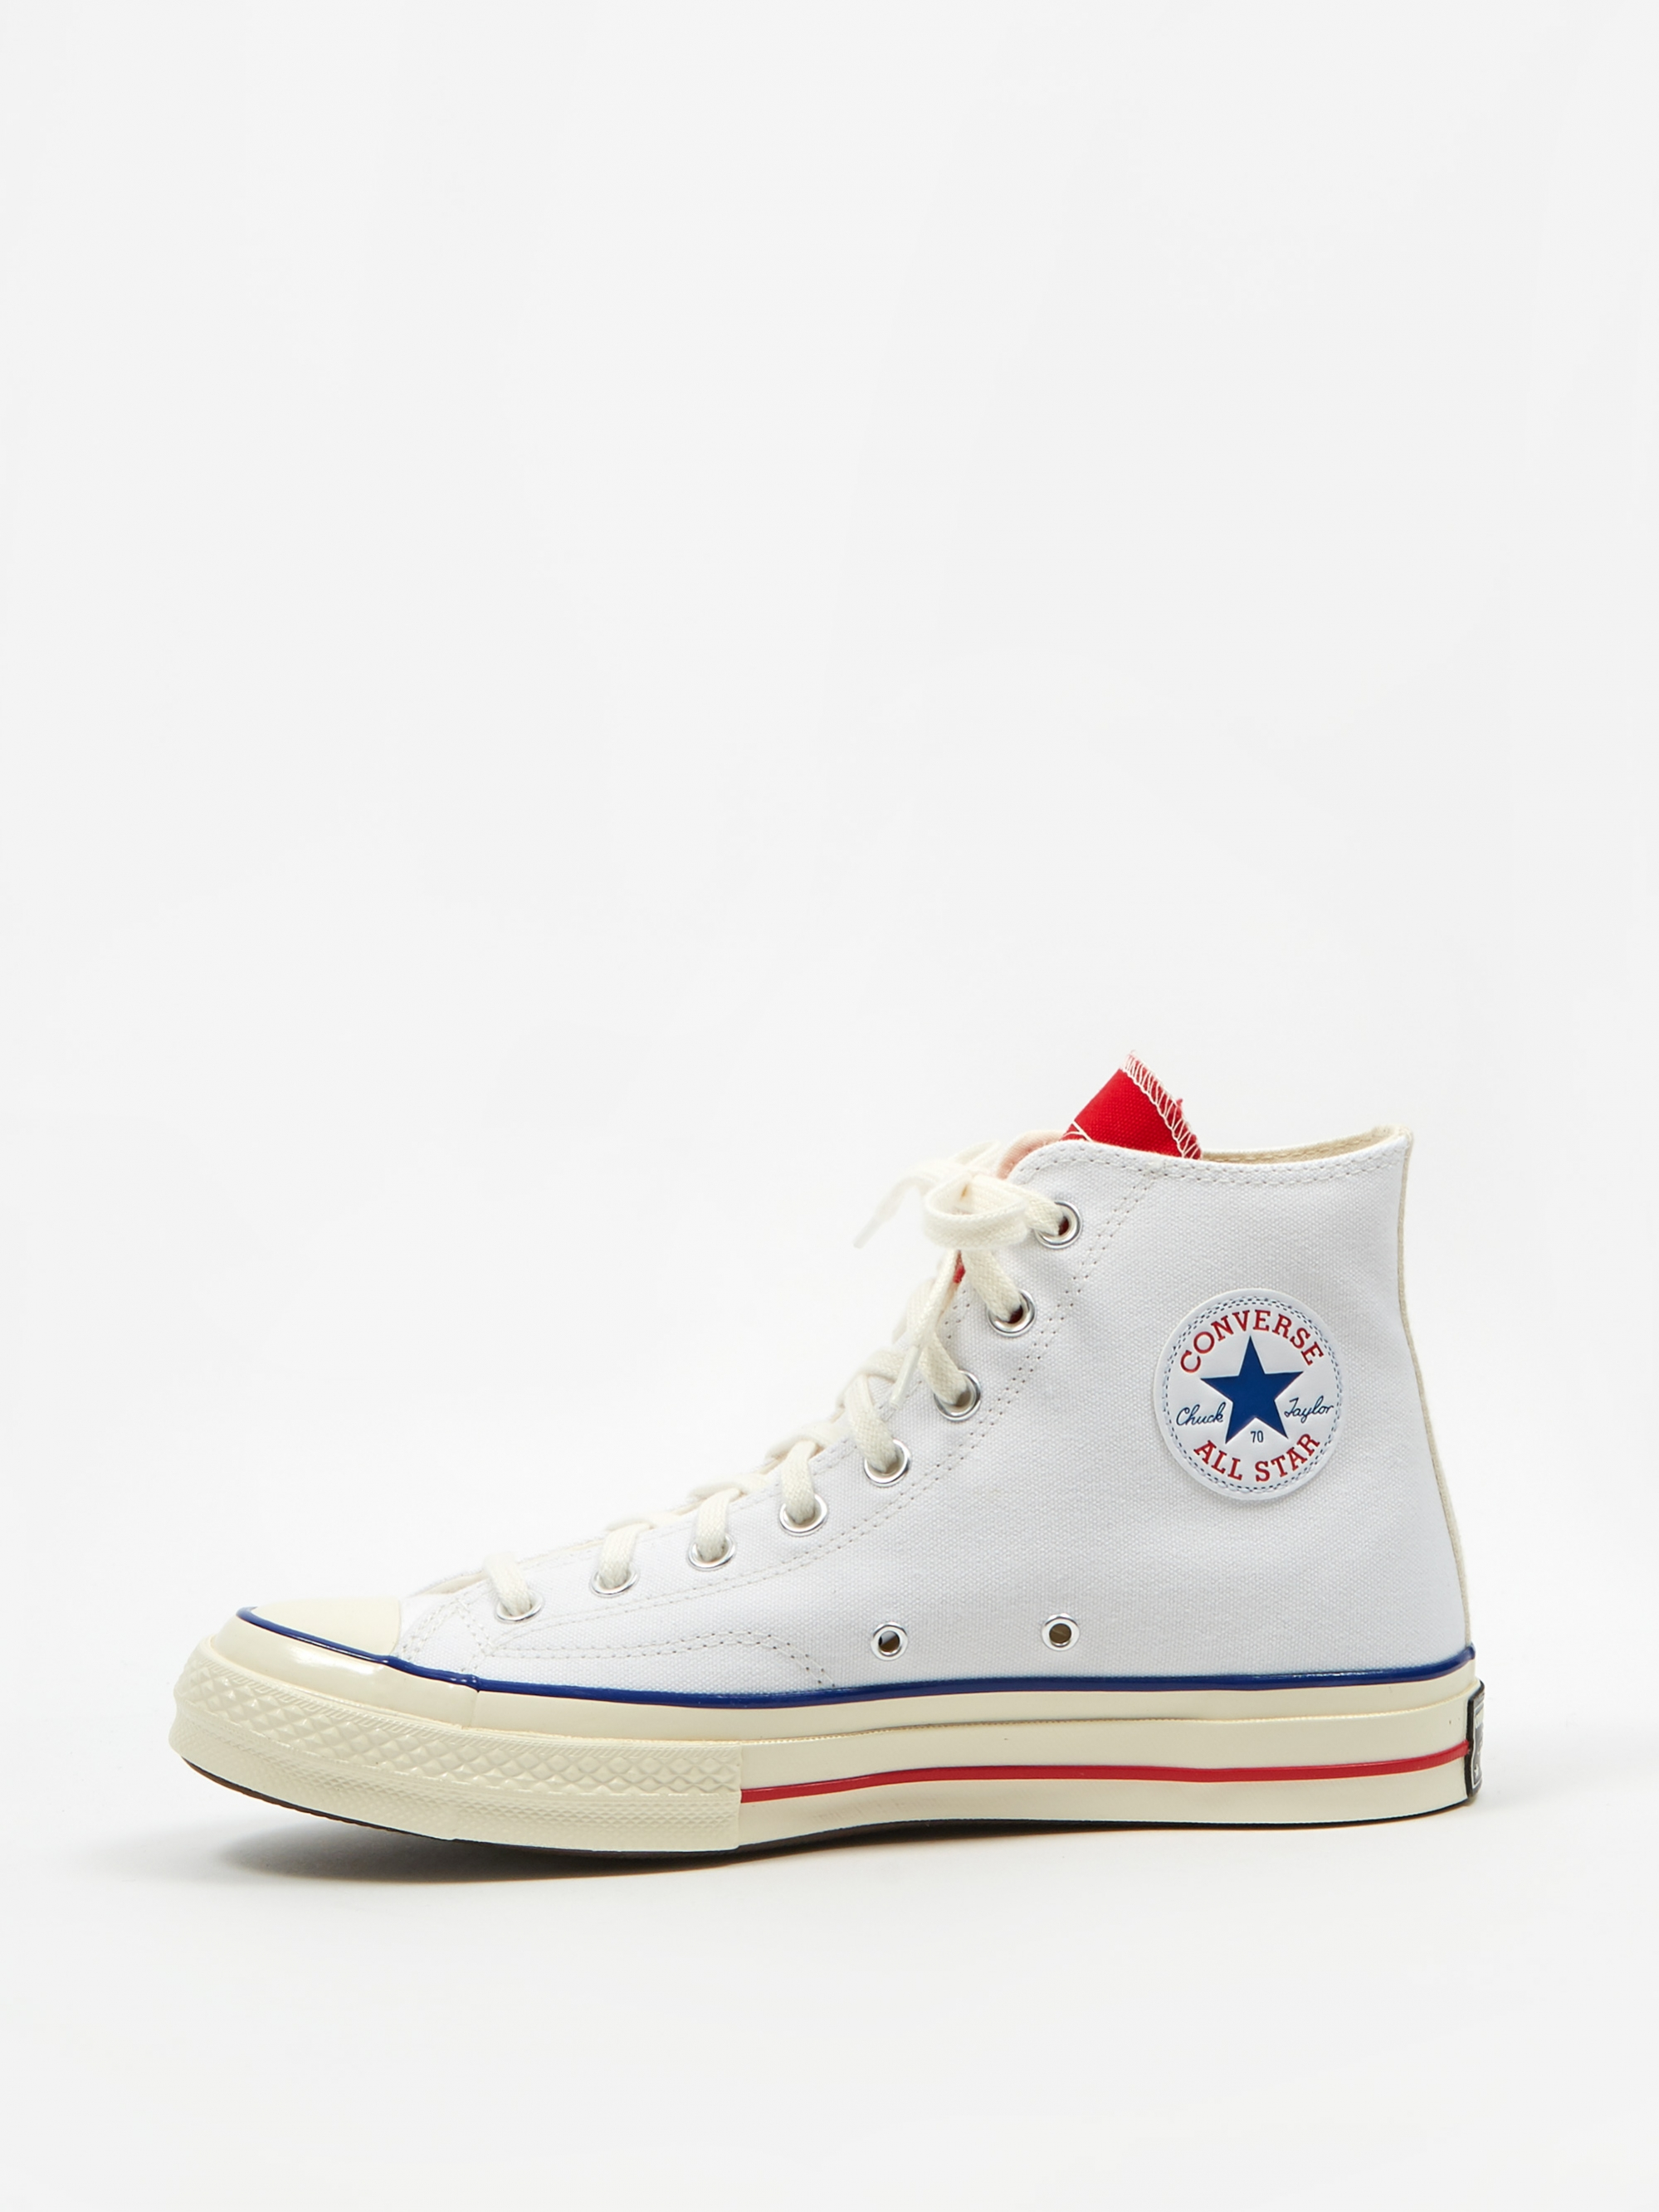 Converse Chuck Taylor All Star 70 Twisted Tongue Hi - White/Red/